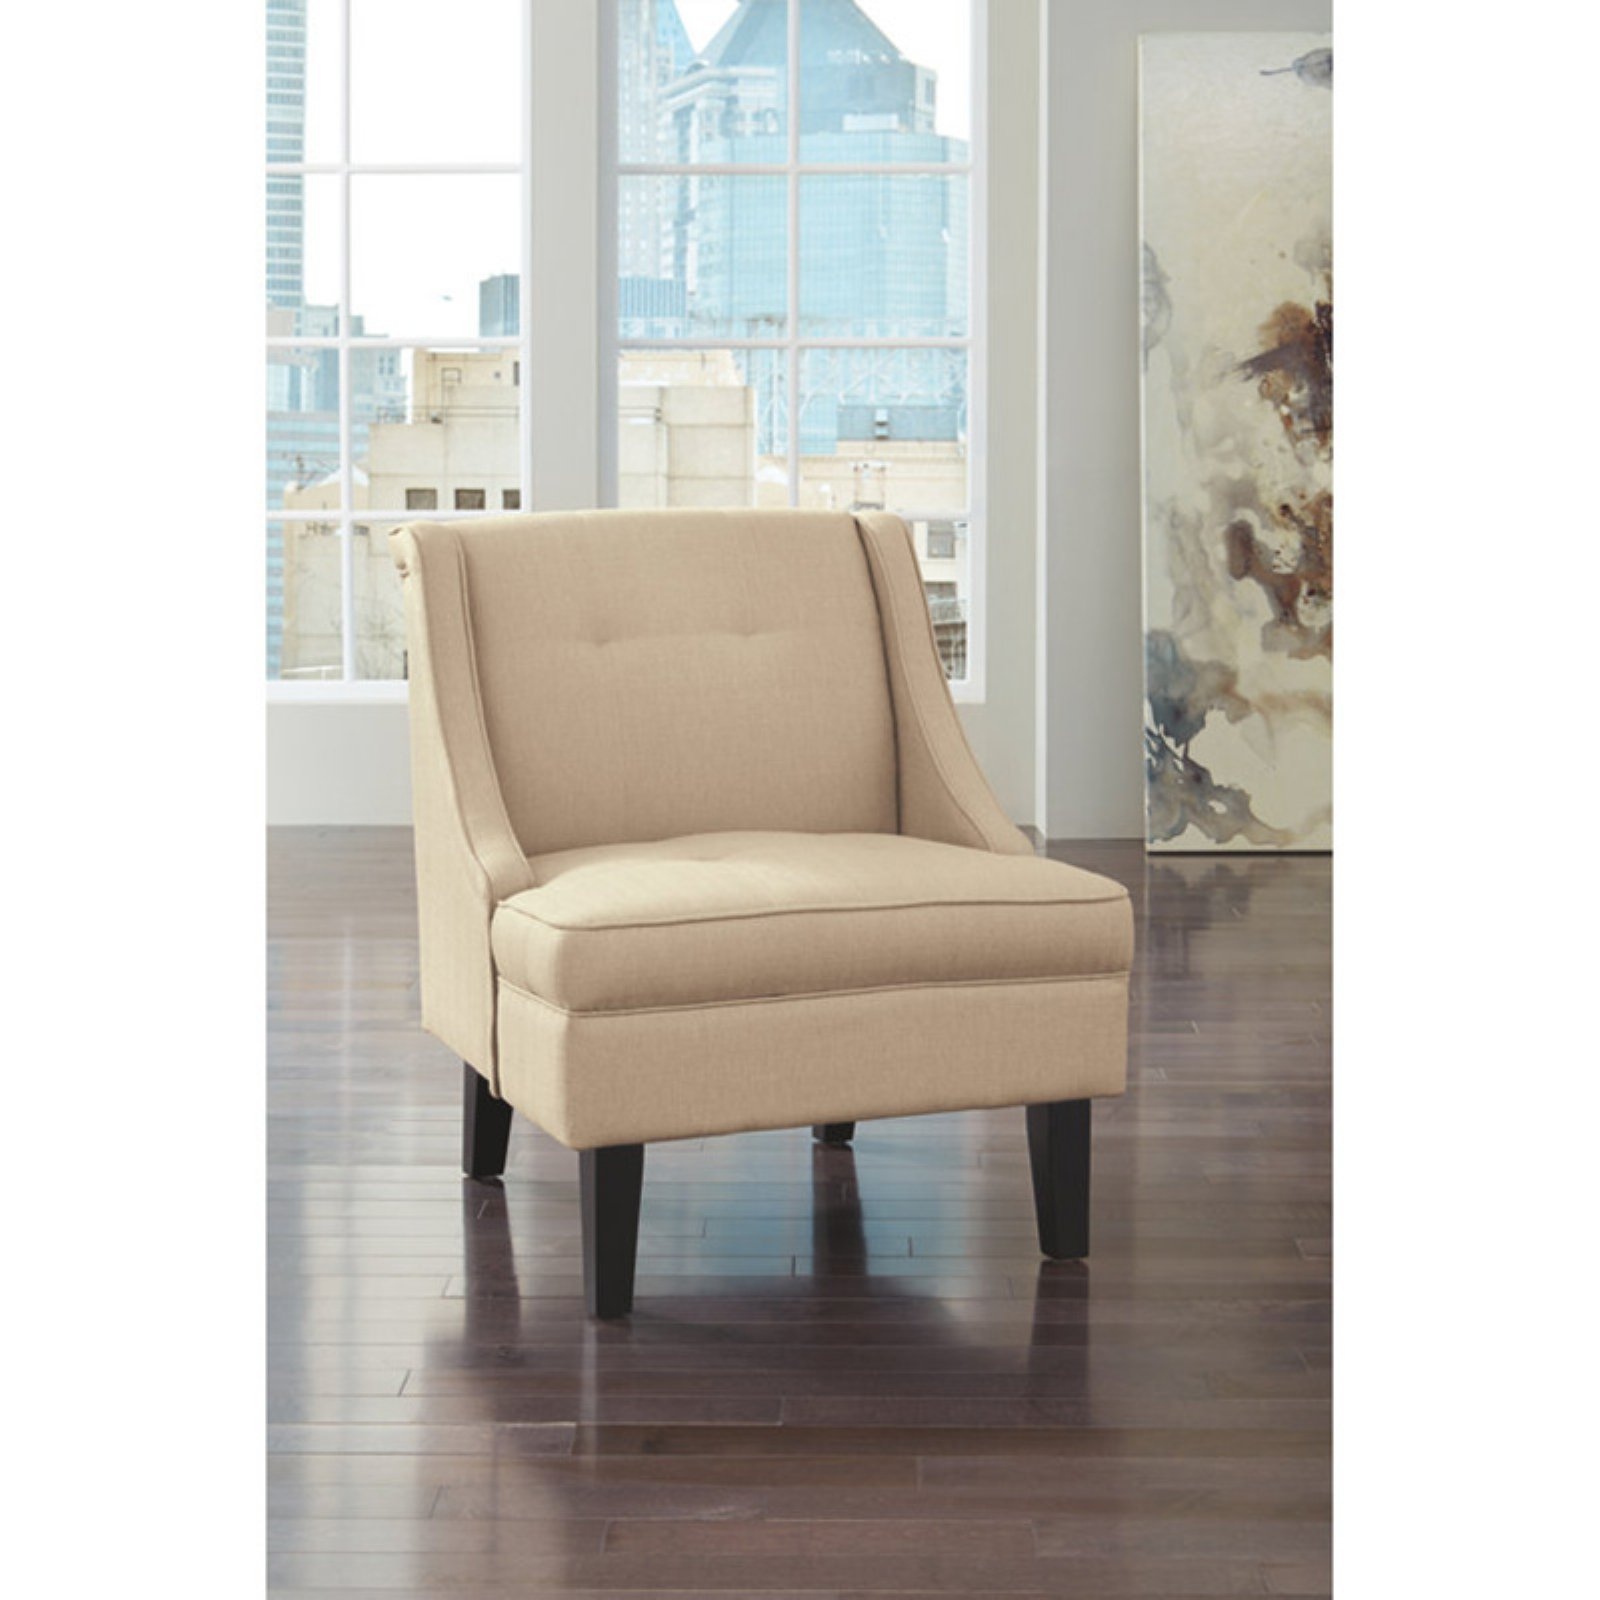 Signature Design by Ashley Clarinda Accent Chair